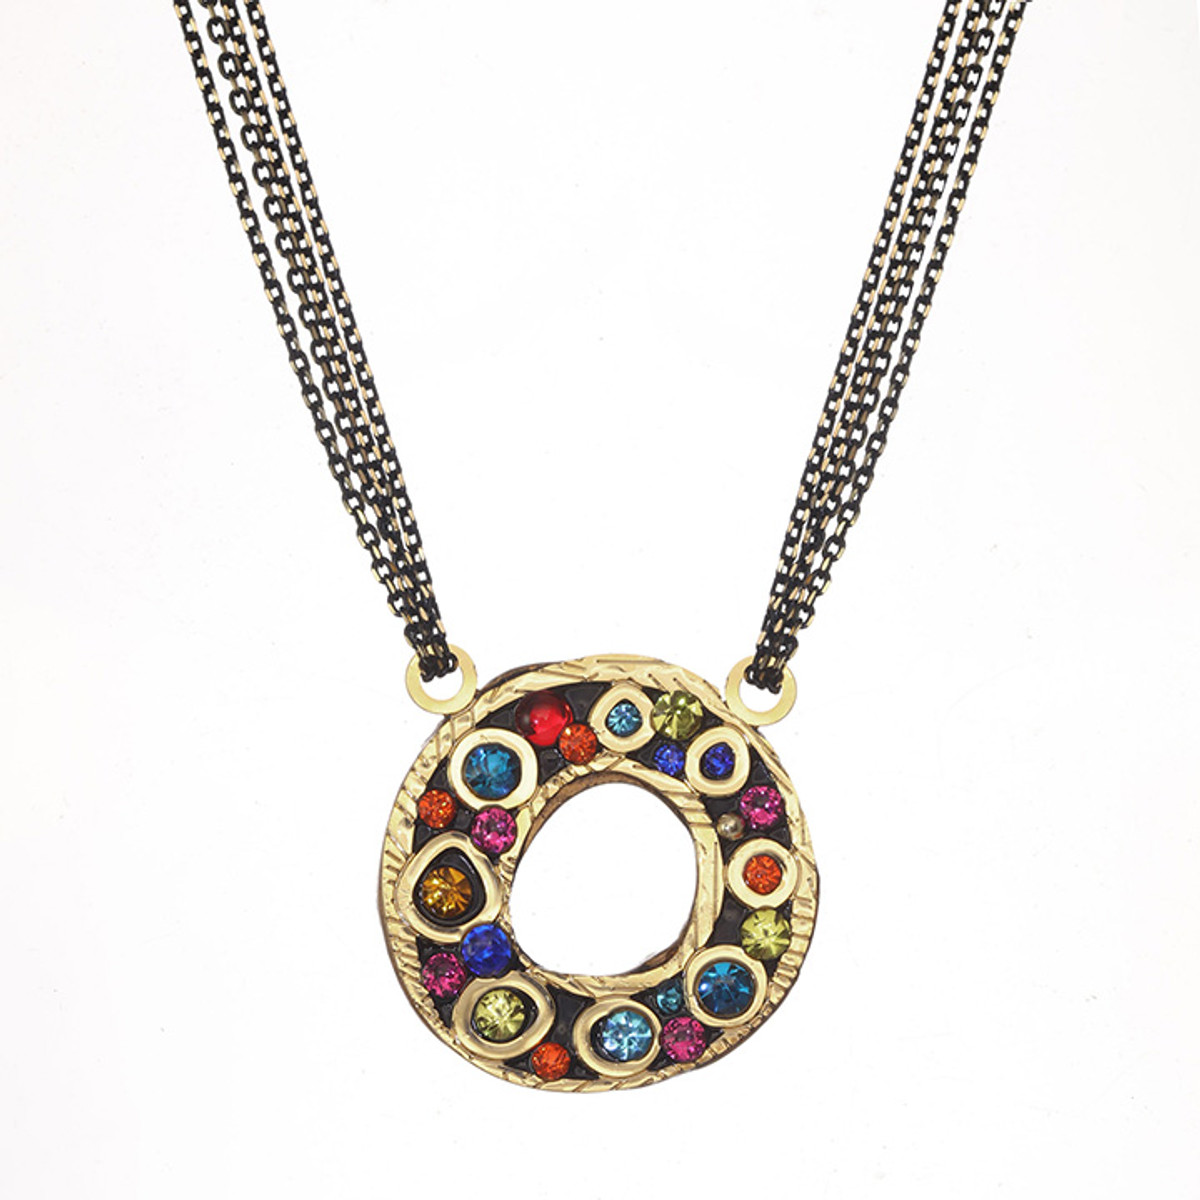 Michal Golan Michal Golan Cosmic Open Circle on Chain Necklace